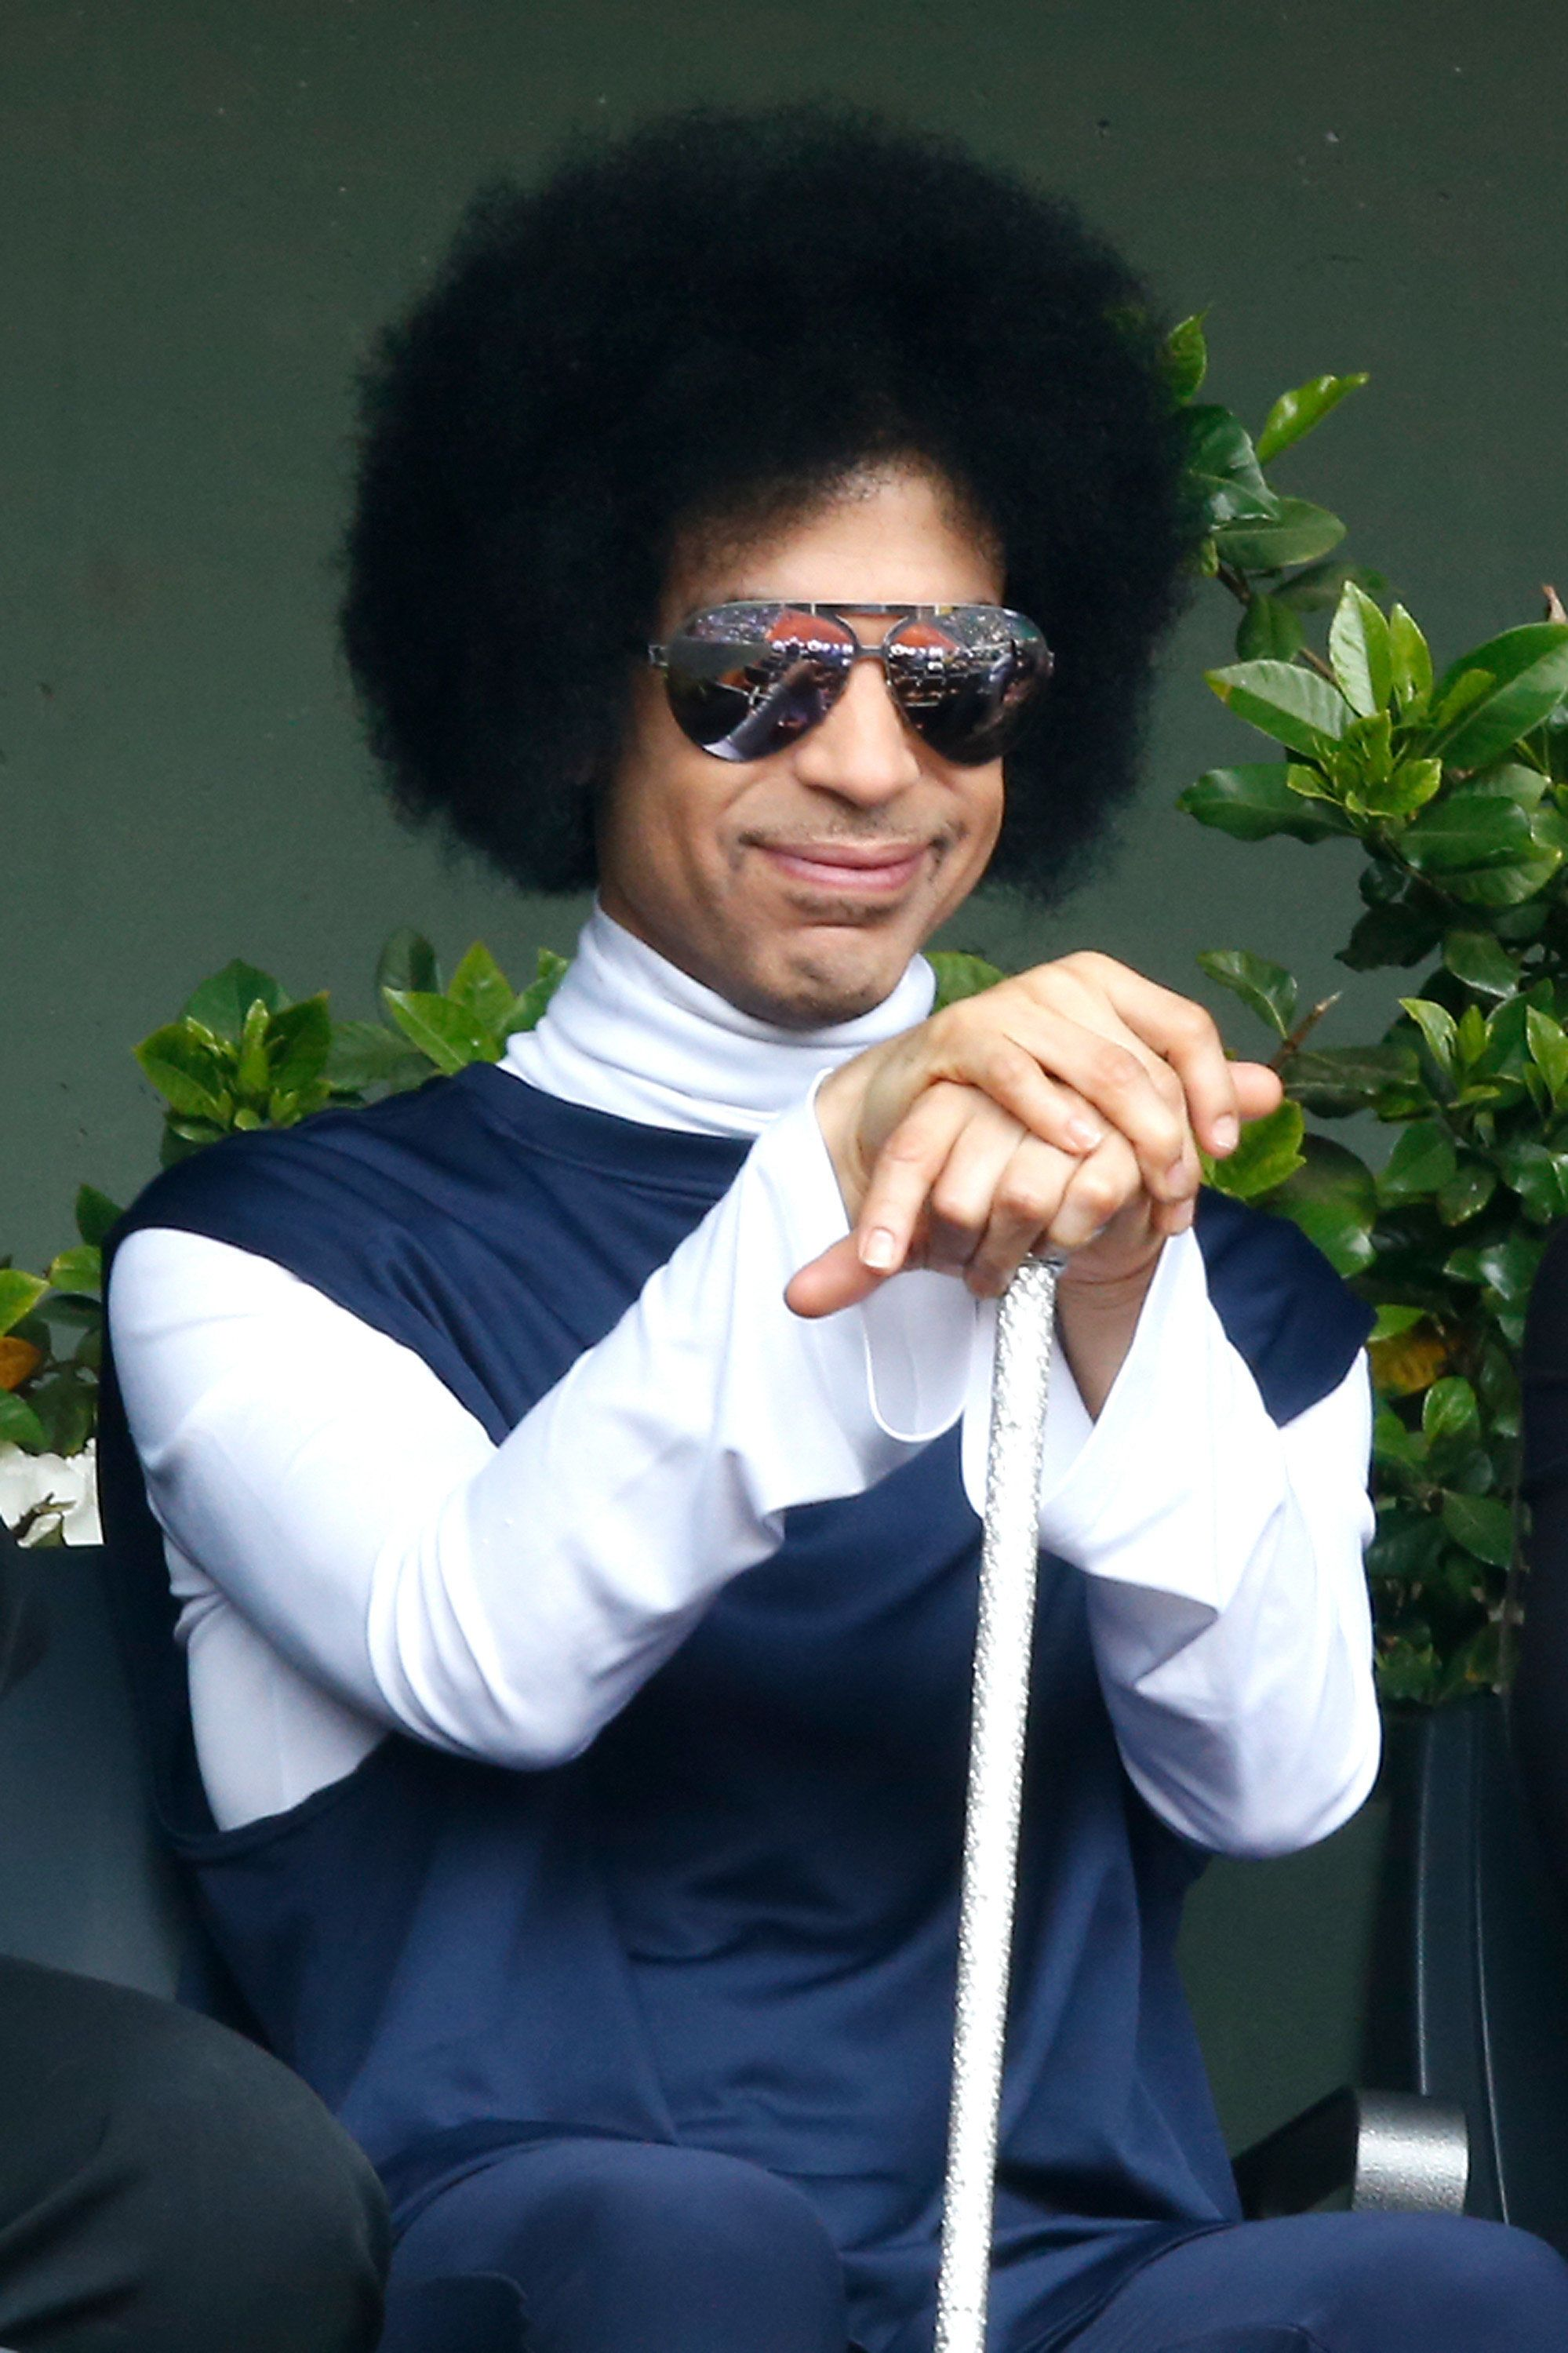 PARIS, FRANCE - JUNE 02:  Singer Prince attend the Roland Garros French Tennis Open 2014 - Day 9 on June 2, 2014 in Paris, France.  (Photo by Rindoff/Charriau/French Select/Getty Images)